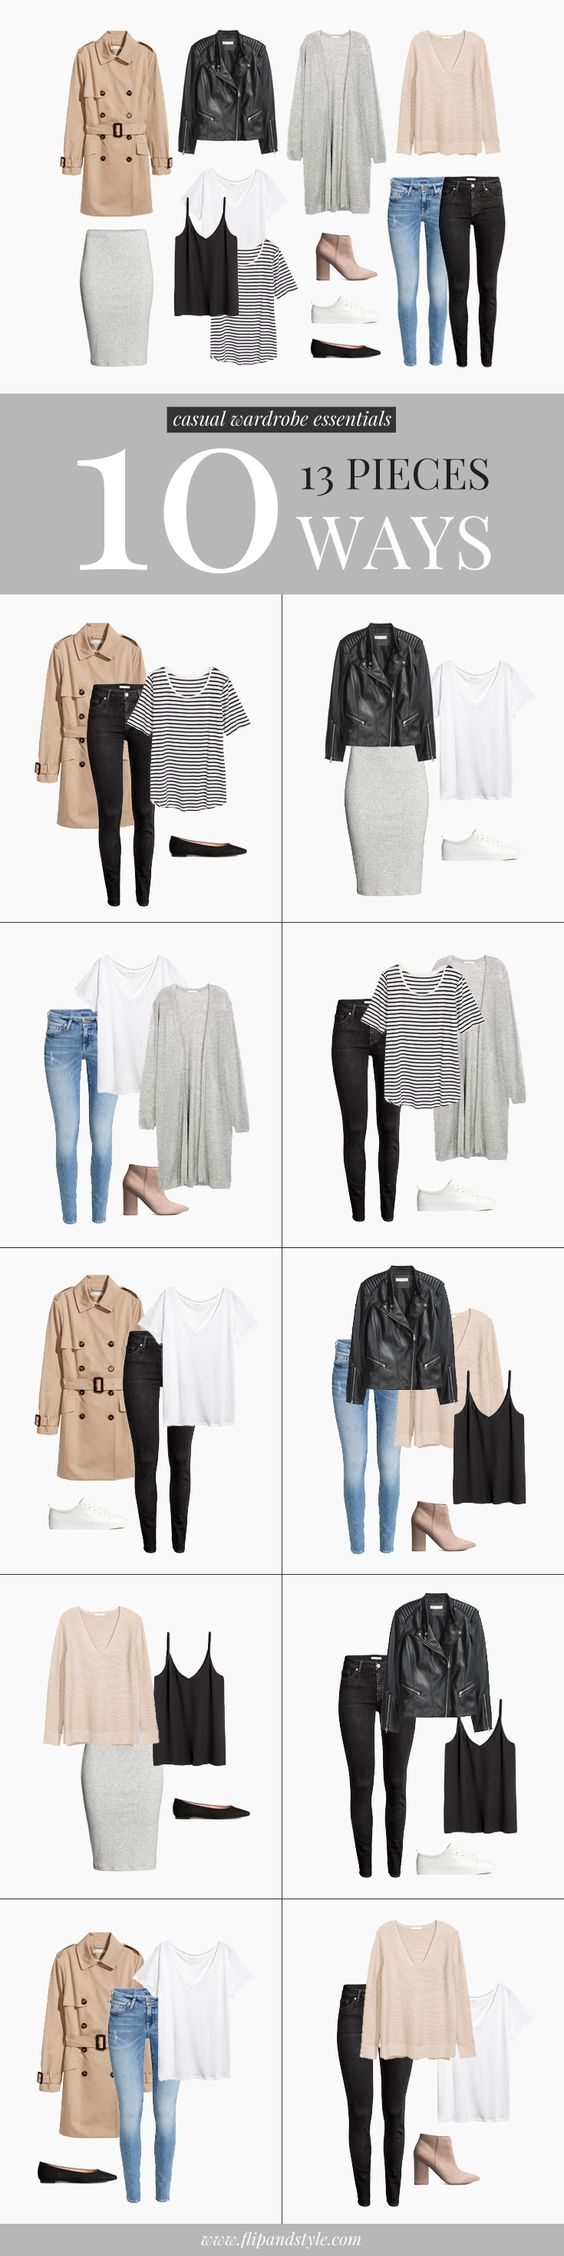 Capsule wardrobe style essentials & minimalist casual outfit ideas | All pieces from H&M | Created by Vanessa at www.flipandstyle.com